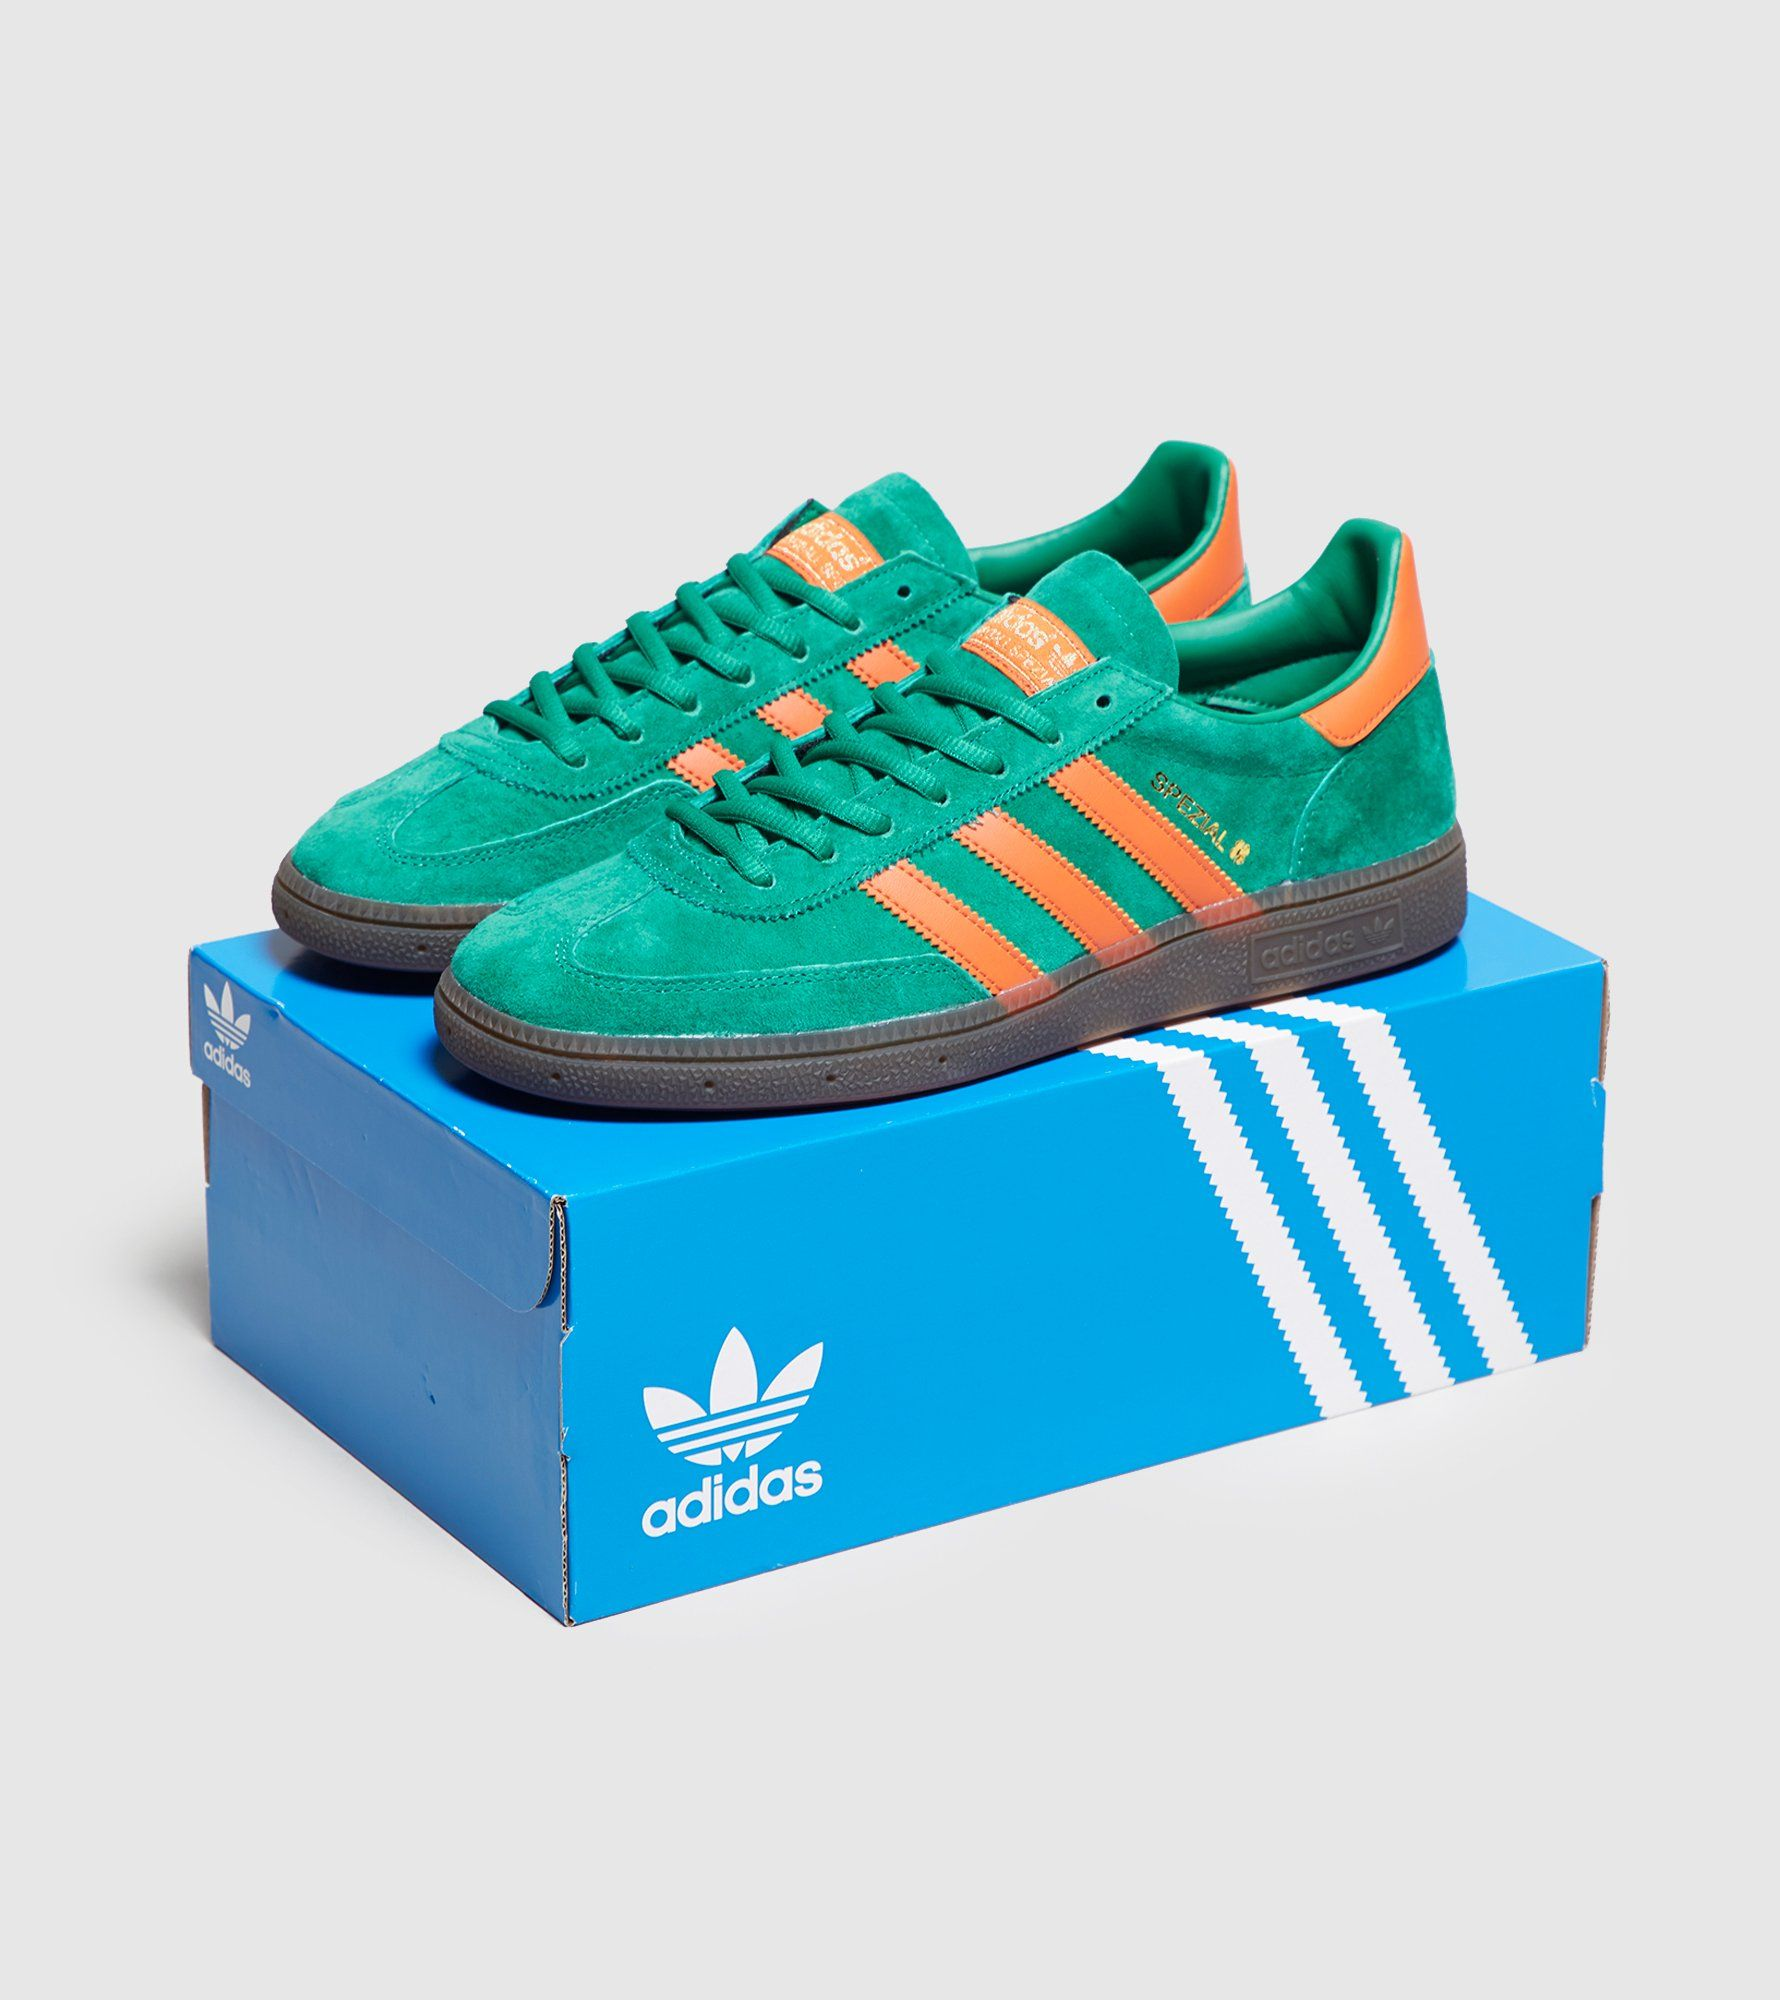 adidas Originals Handball Spezial St Patrick's Day